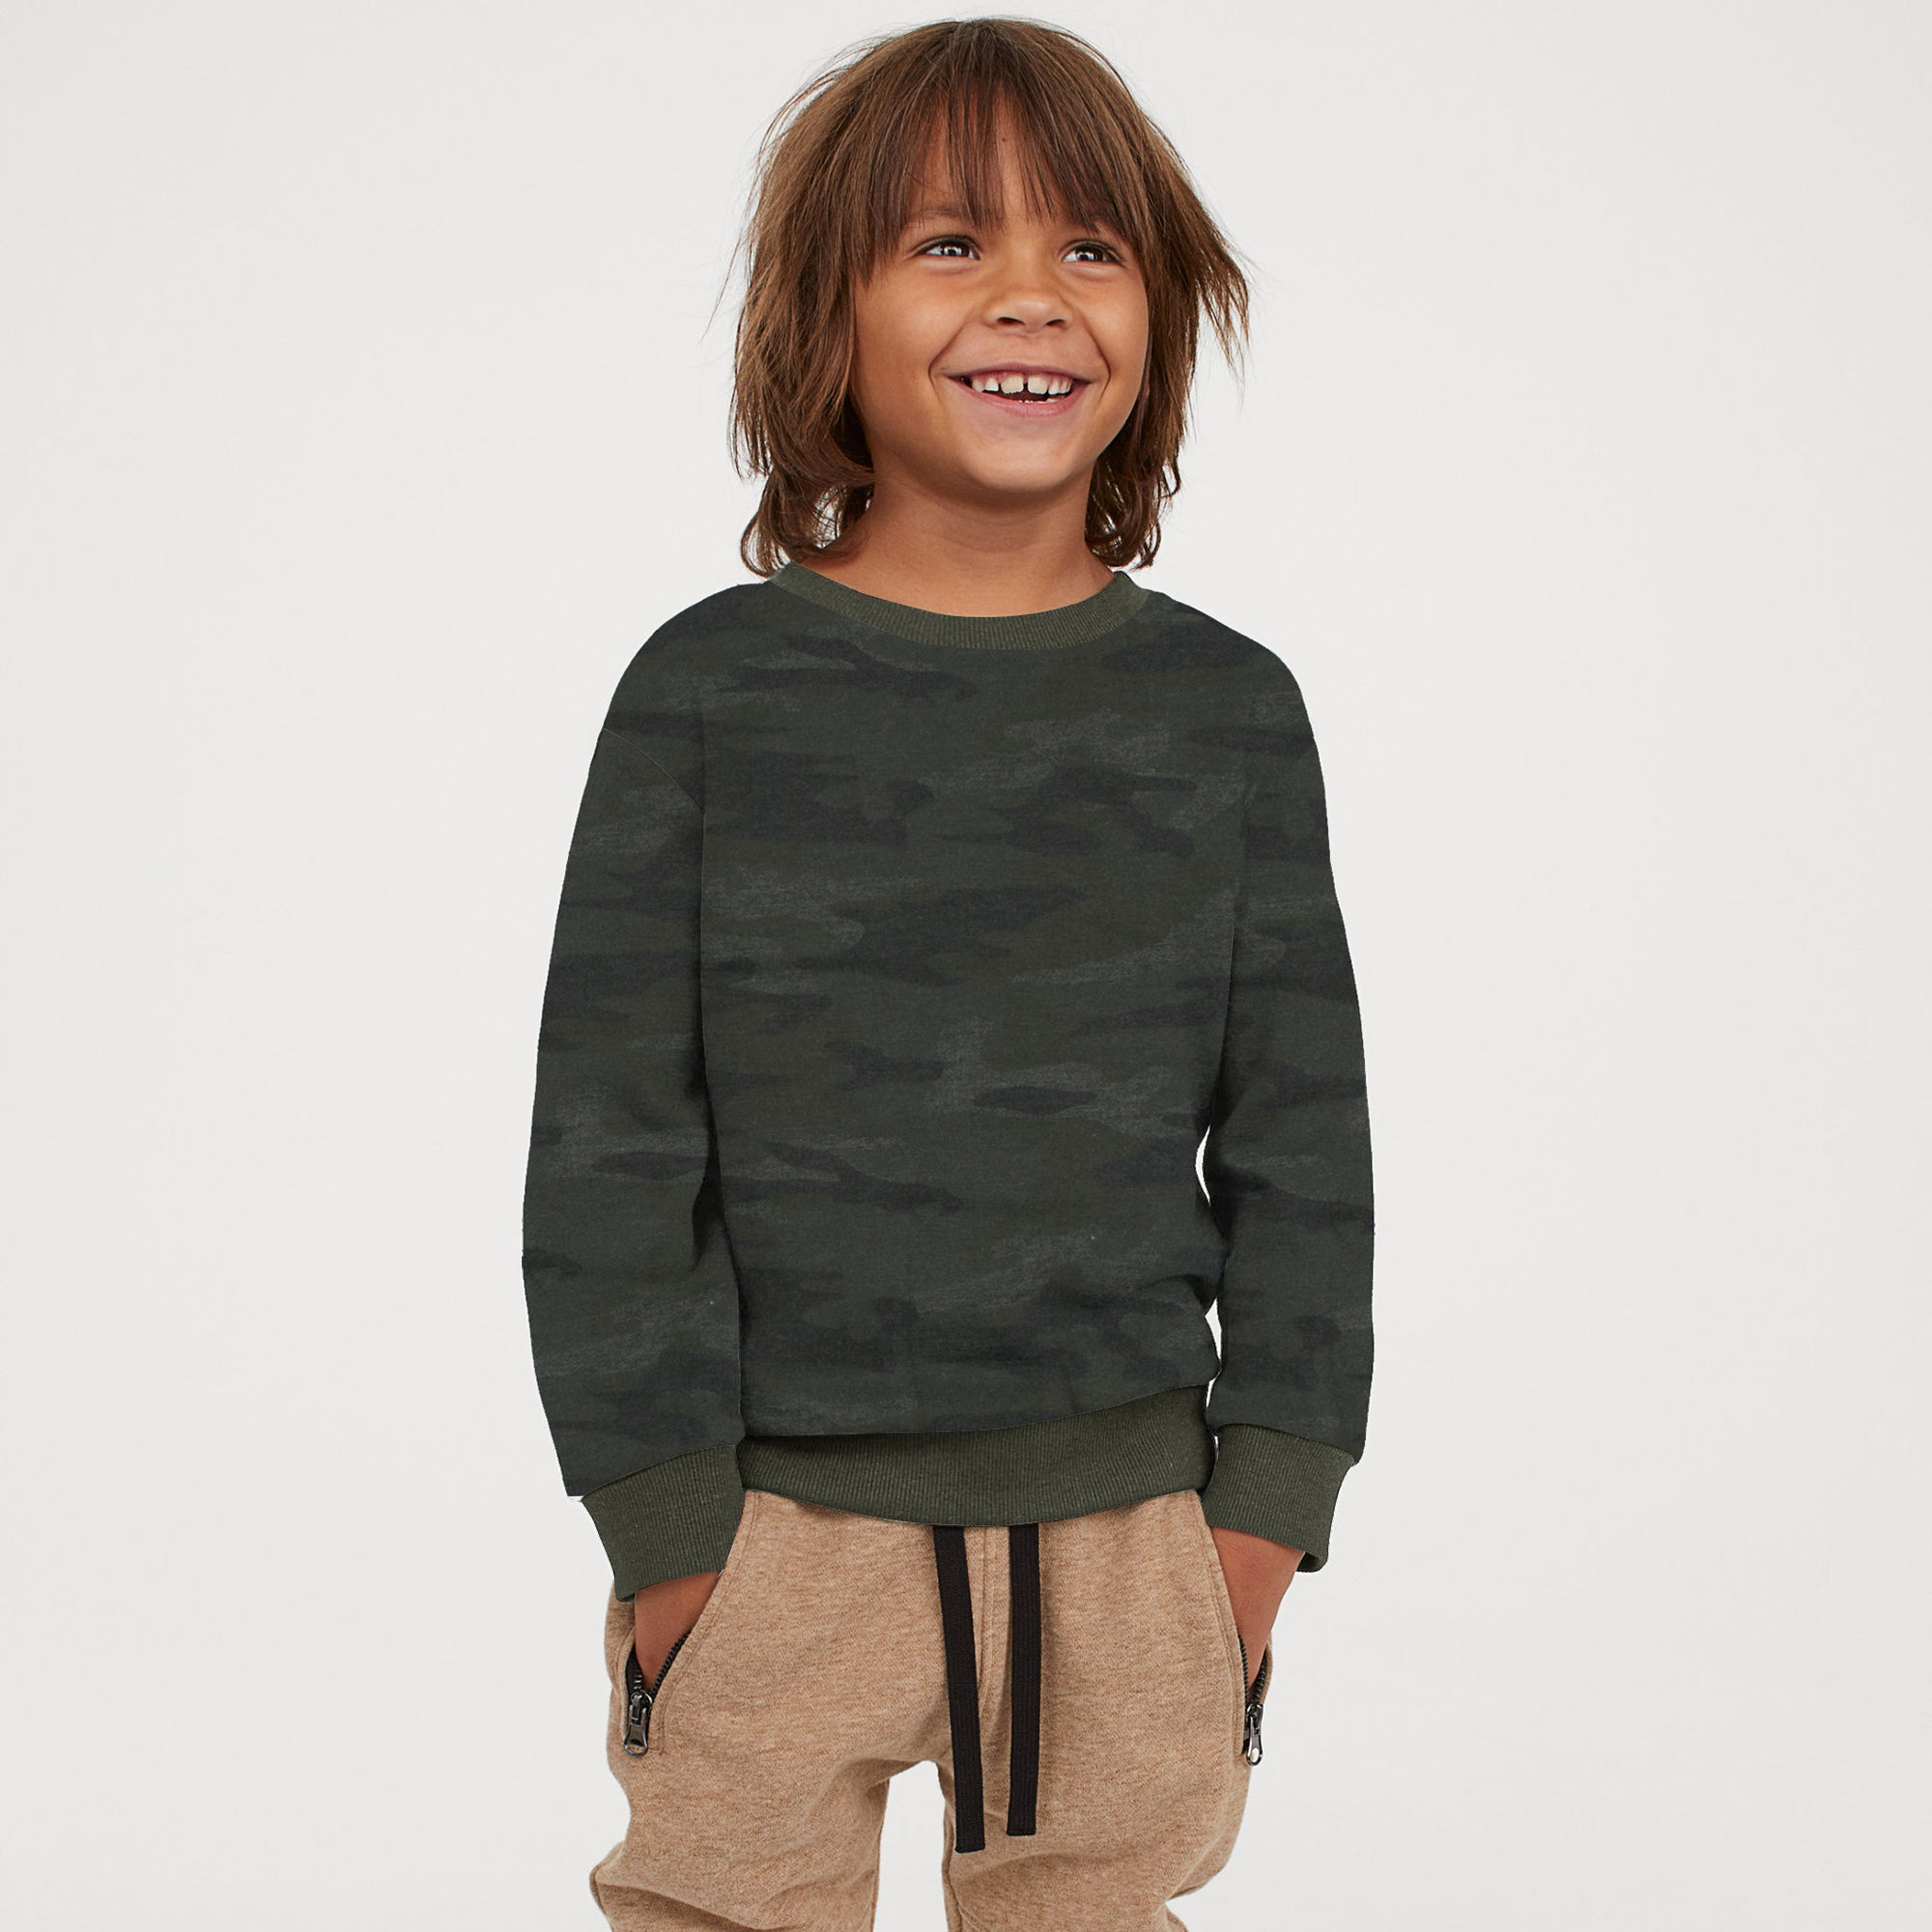 TH Terry Fleece Crew Neck Sweatshirt For Kids-Allover Print-SP766